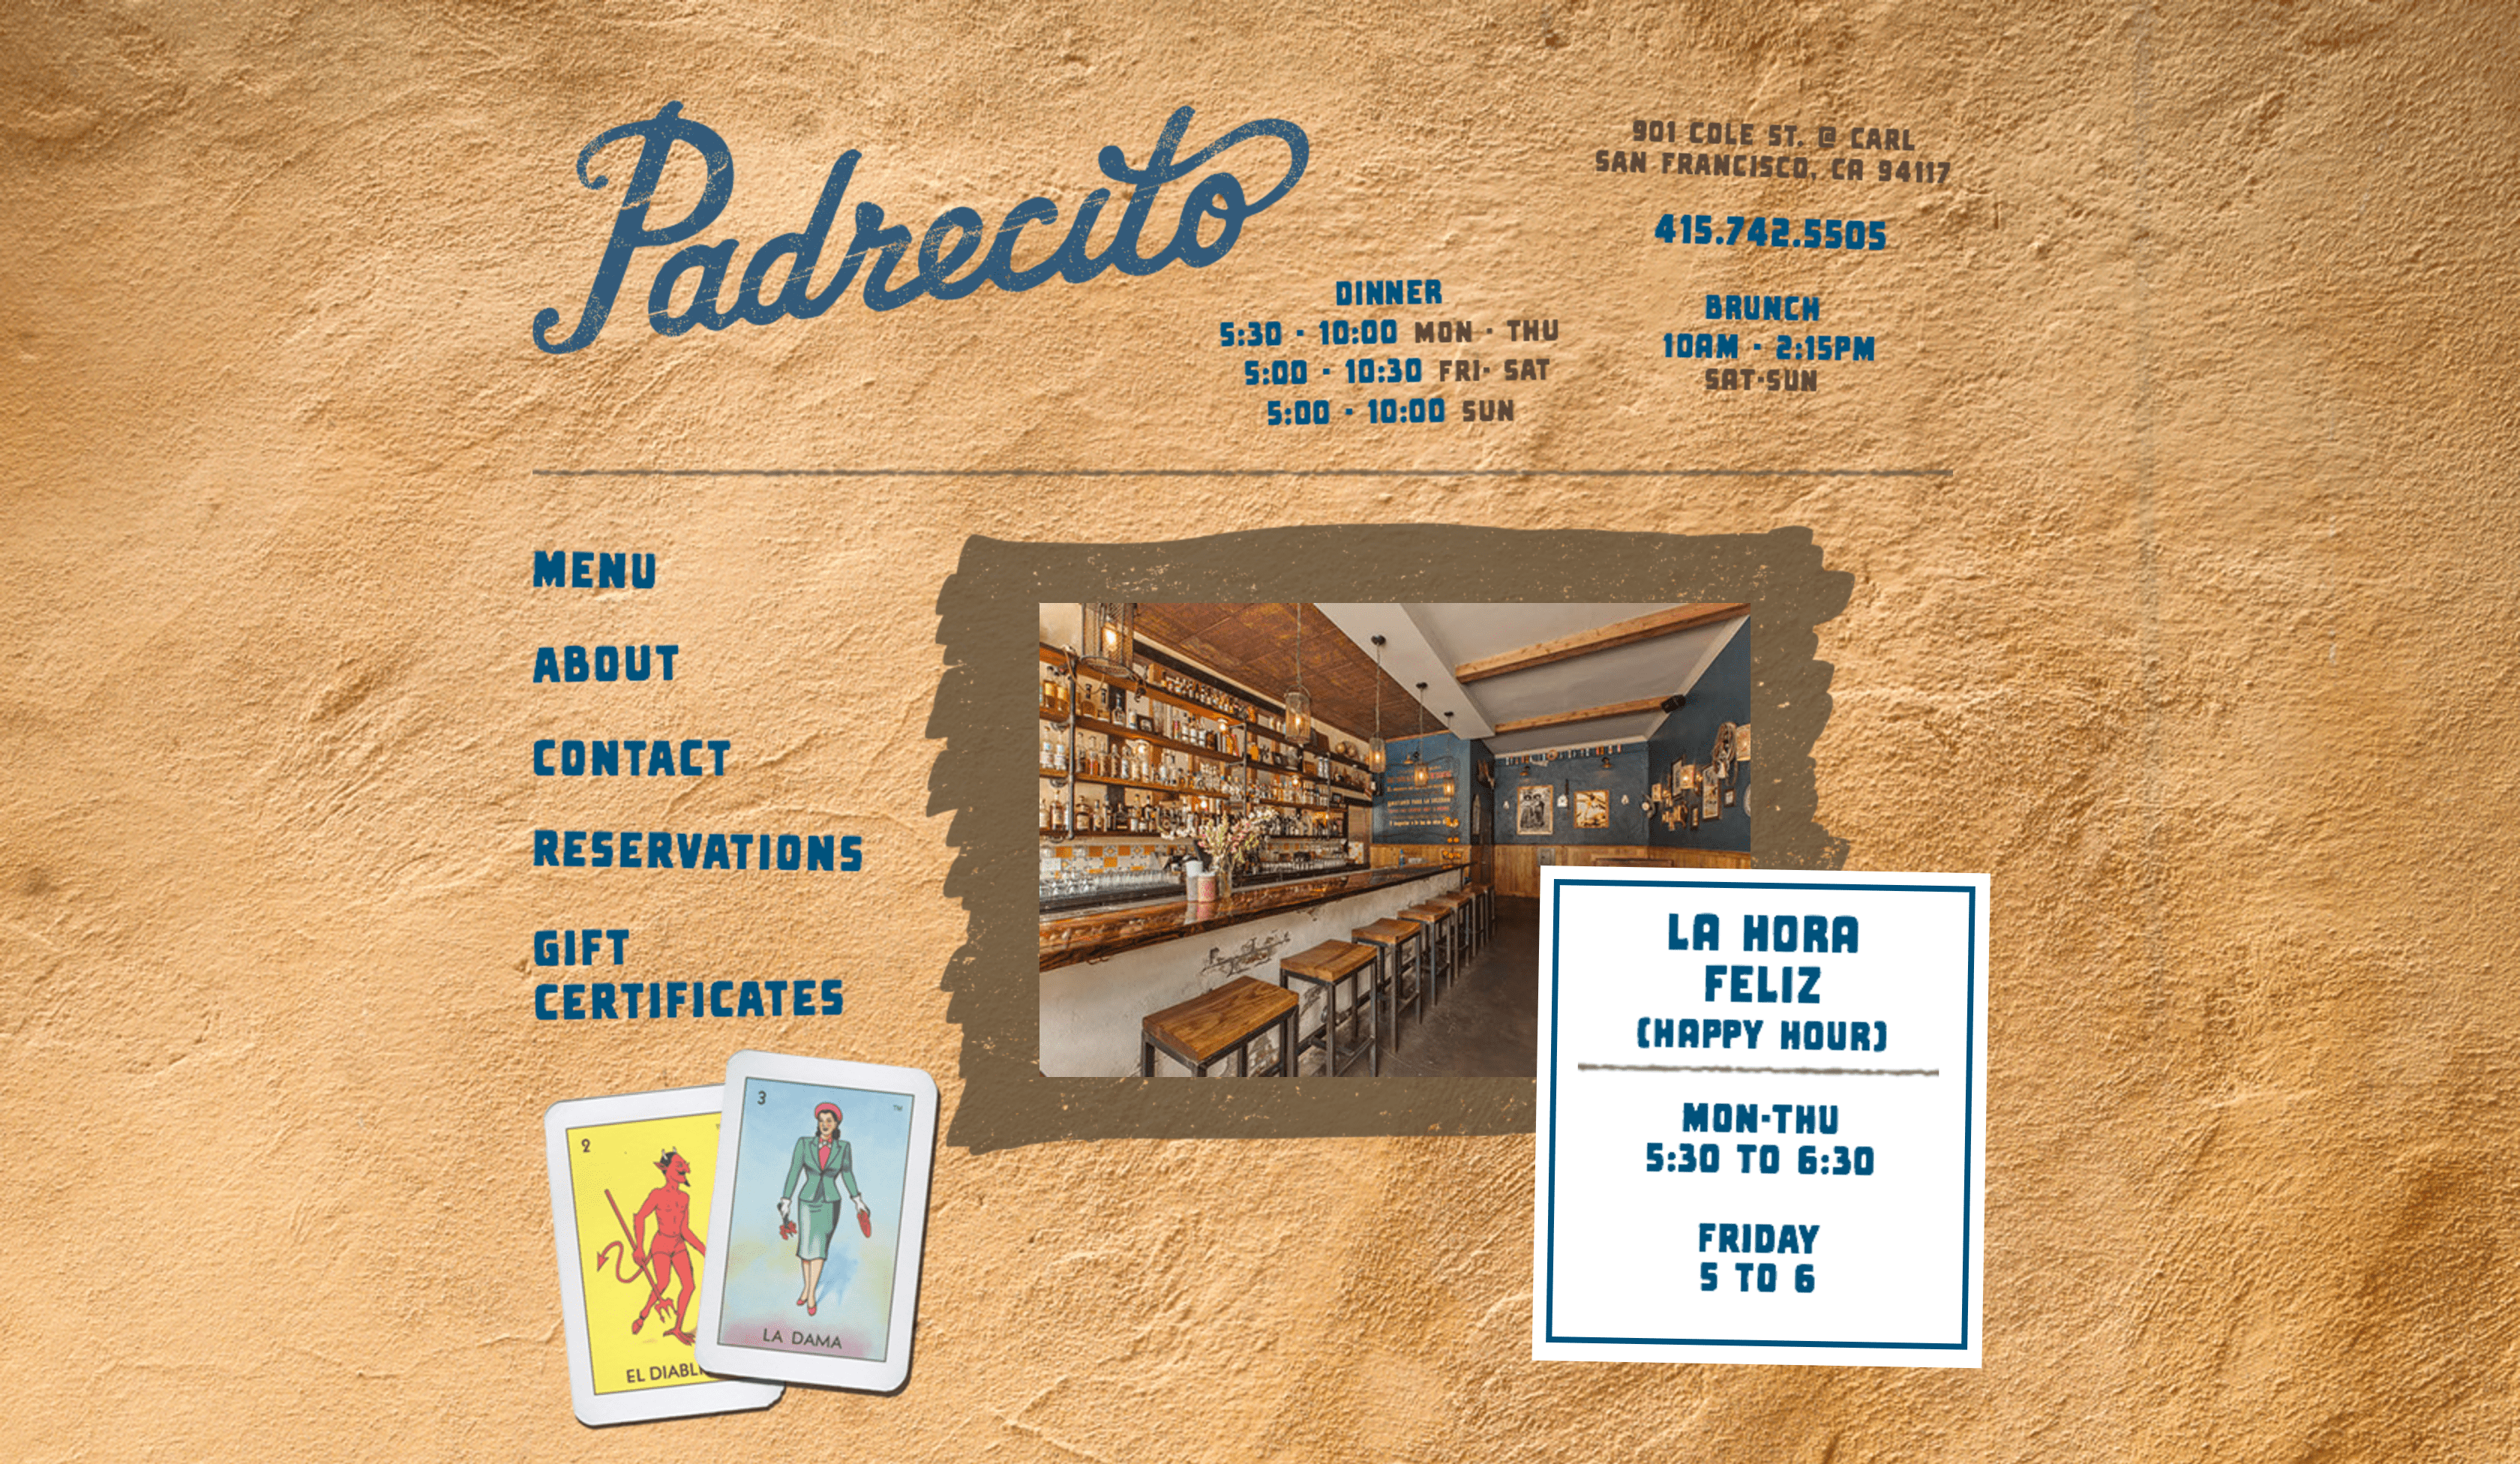 restaurants-padrecito